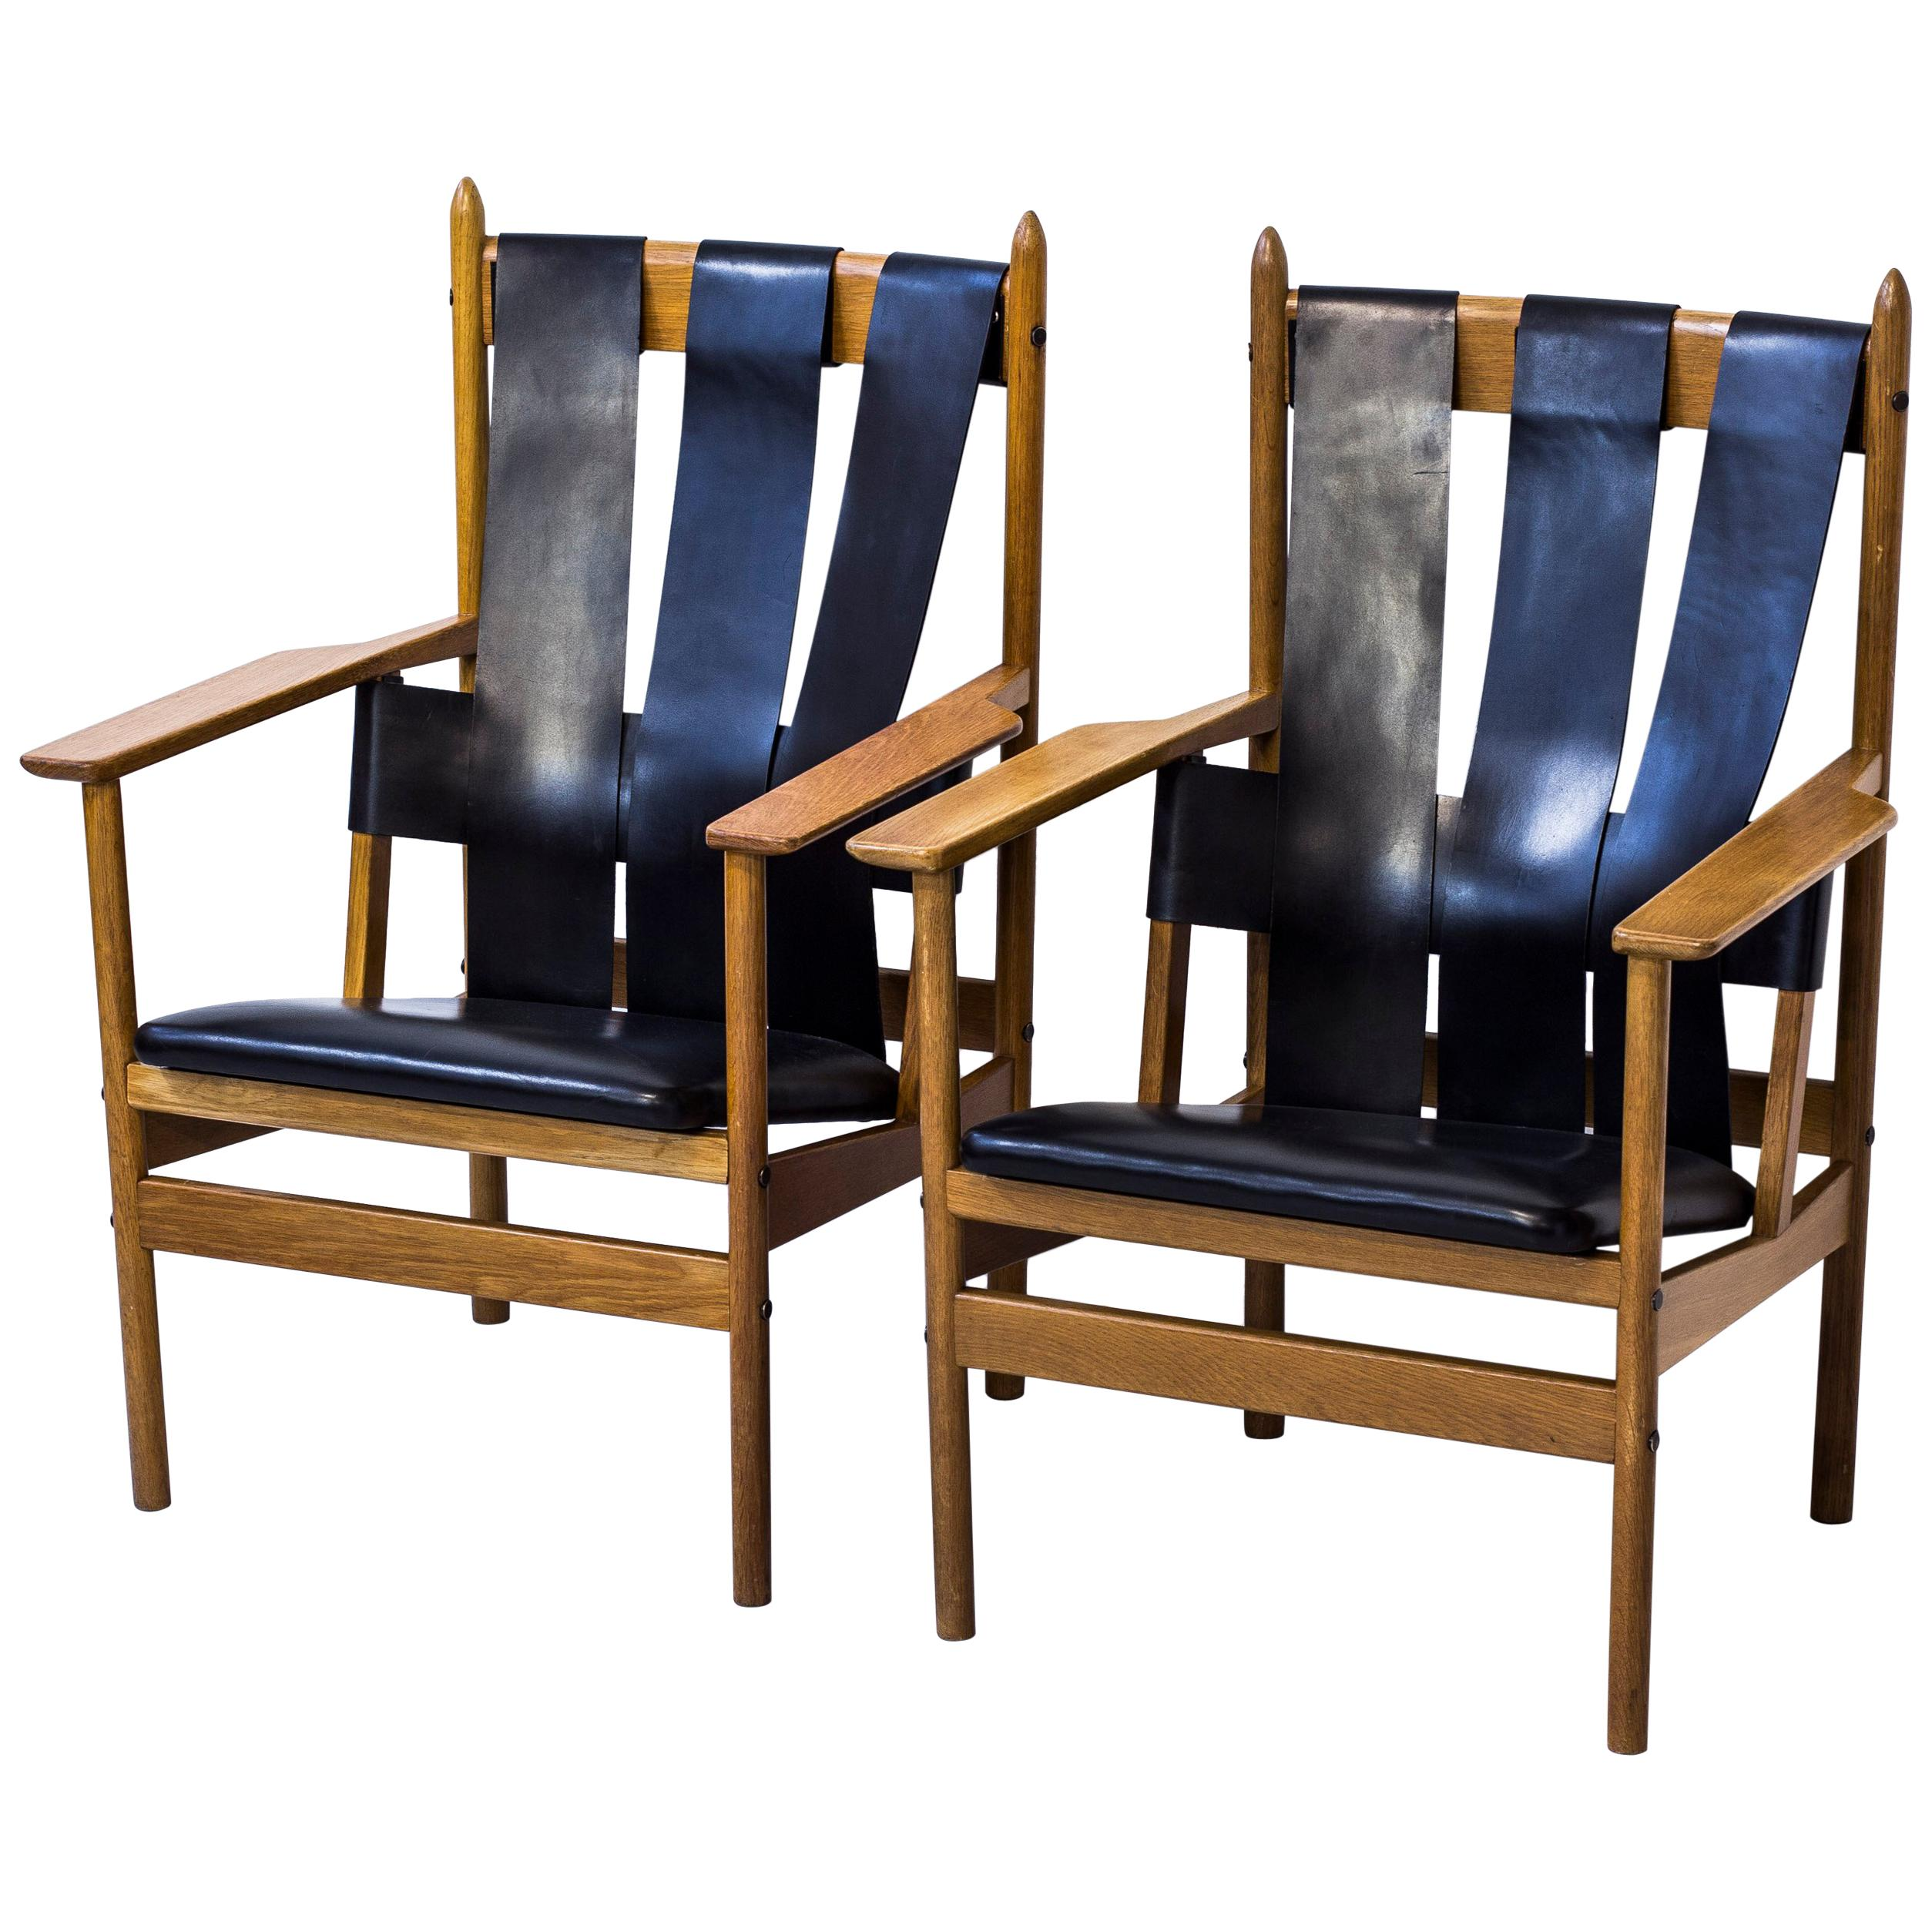 1950s Lounge chairs by Gunnar Eklöf